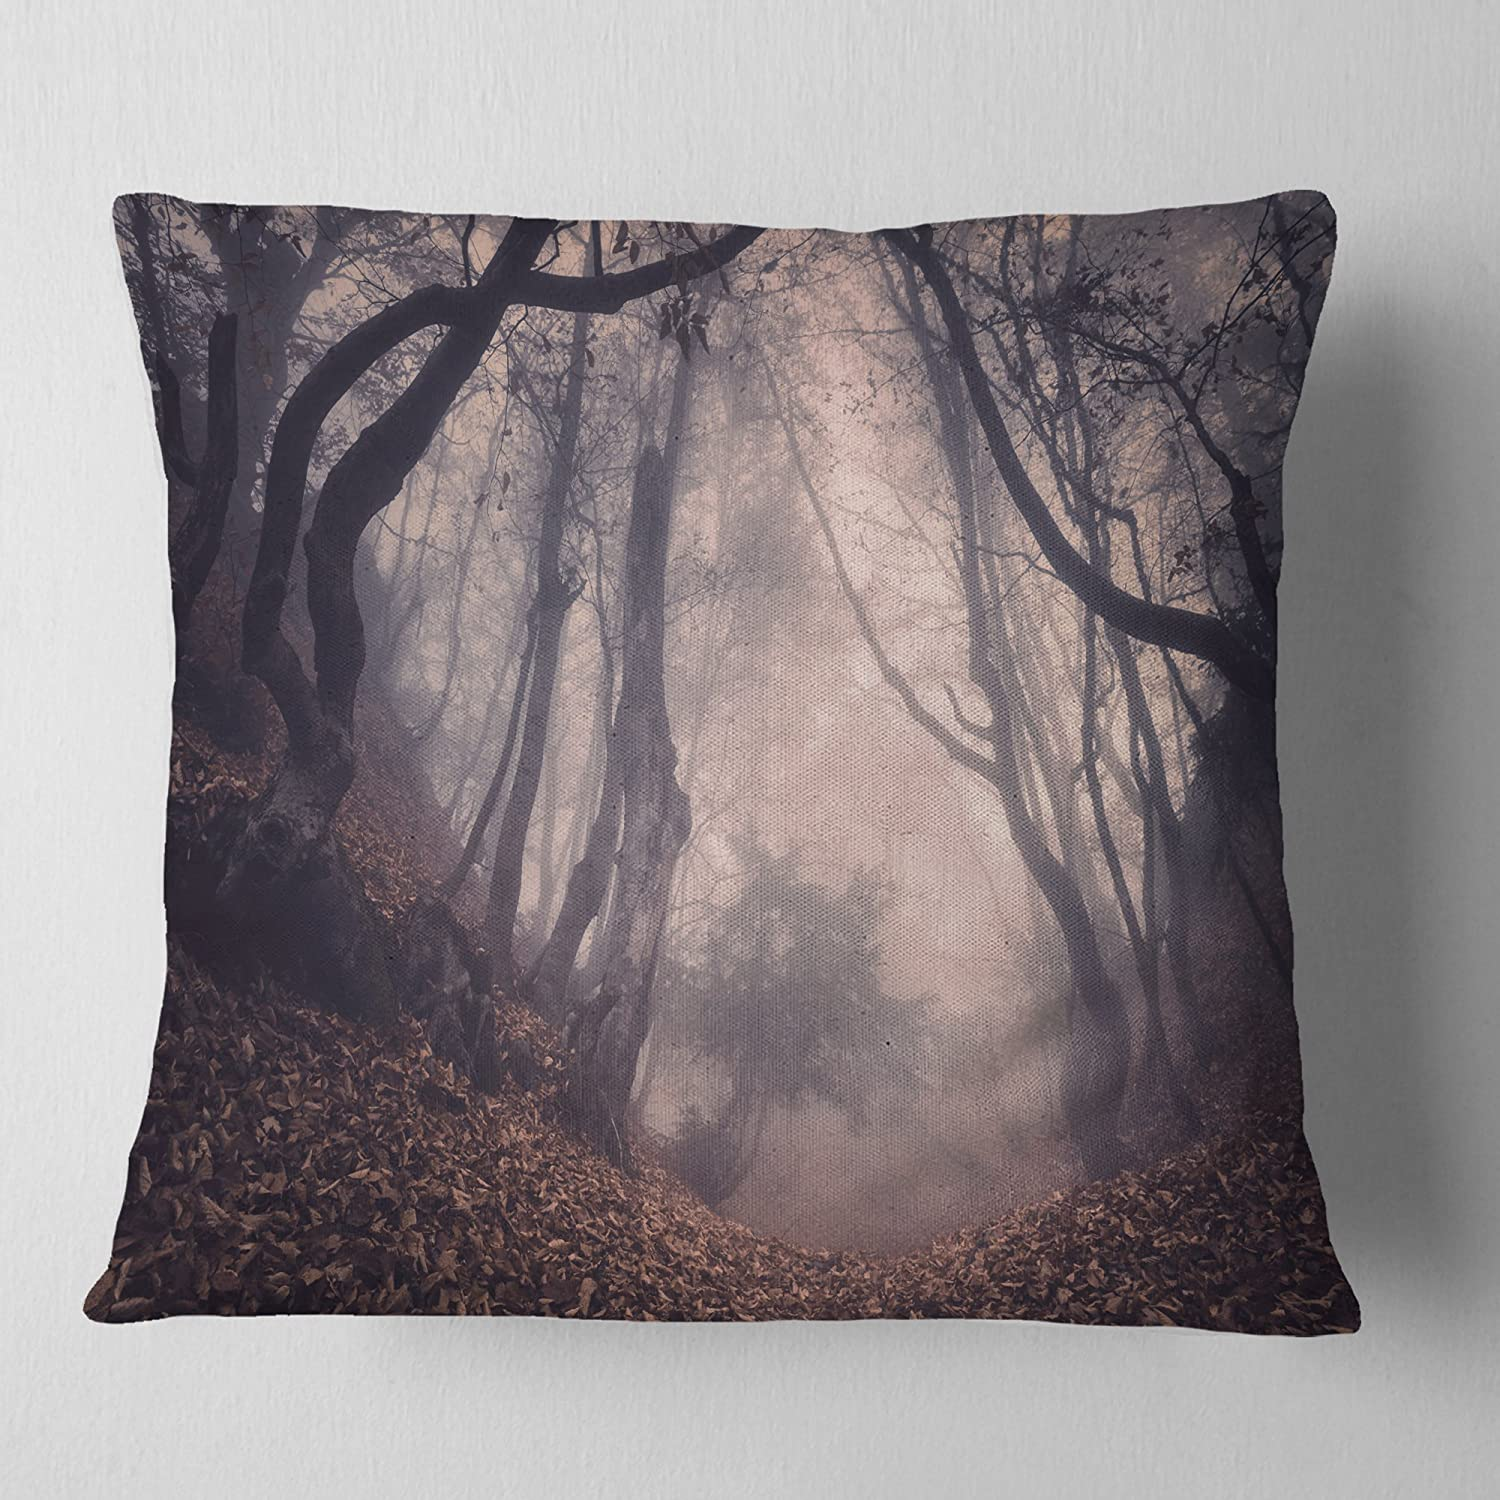 Designart CU8470-18-18 Vintage Foggy Forest Trees' Landscape Photography Cushion Cover for Living Room, Sofa Throw Pillow 18 in. x 18 in. in